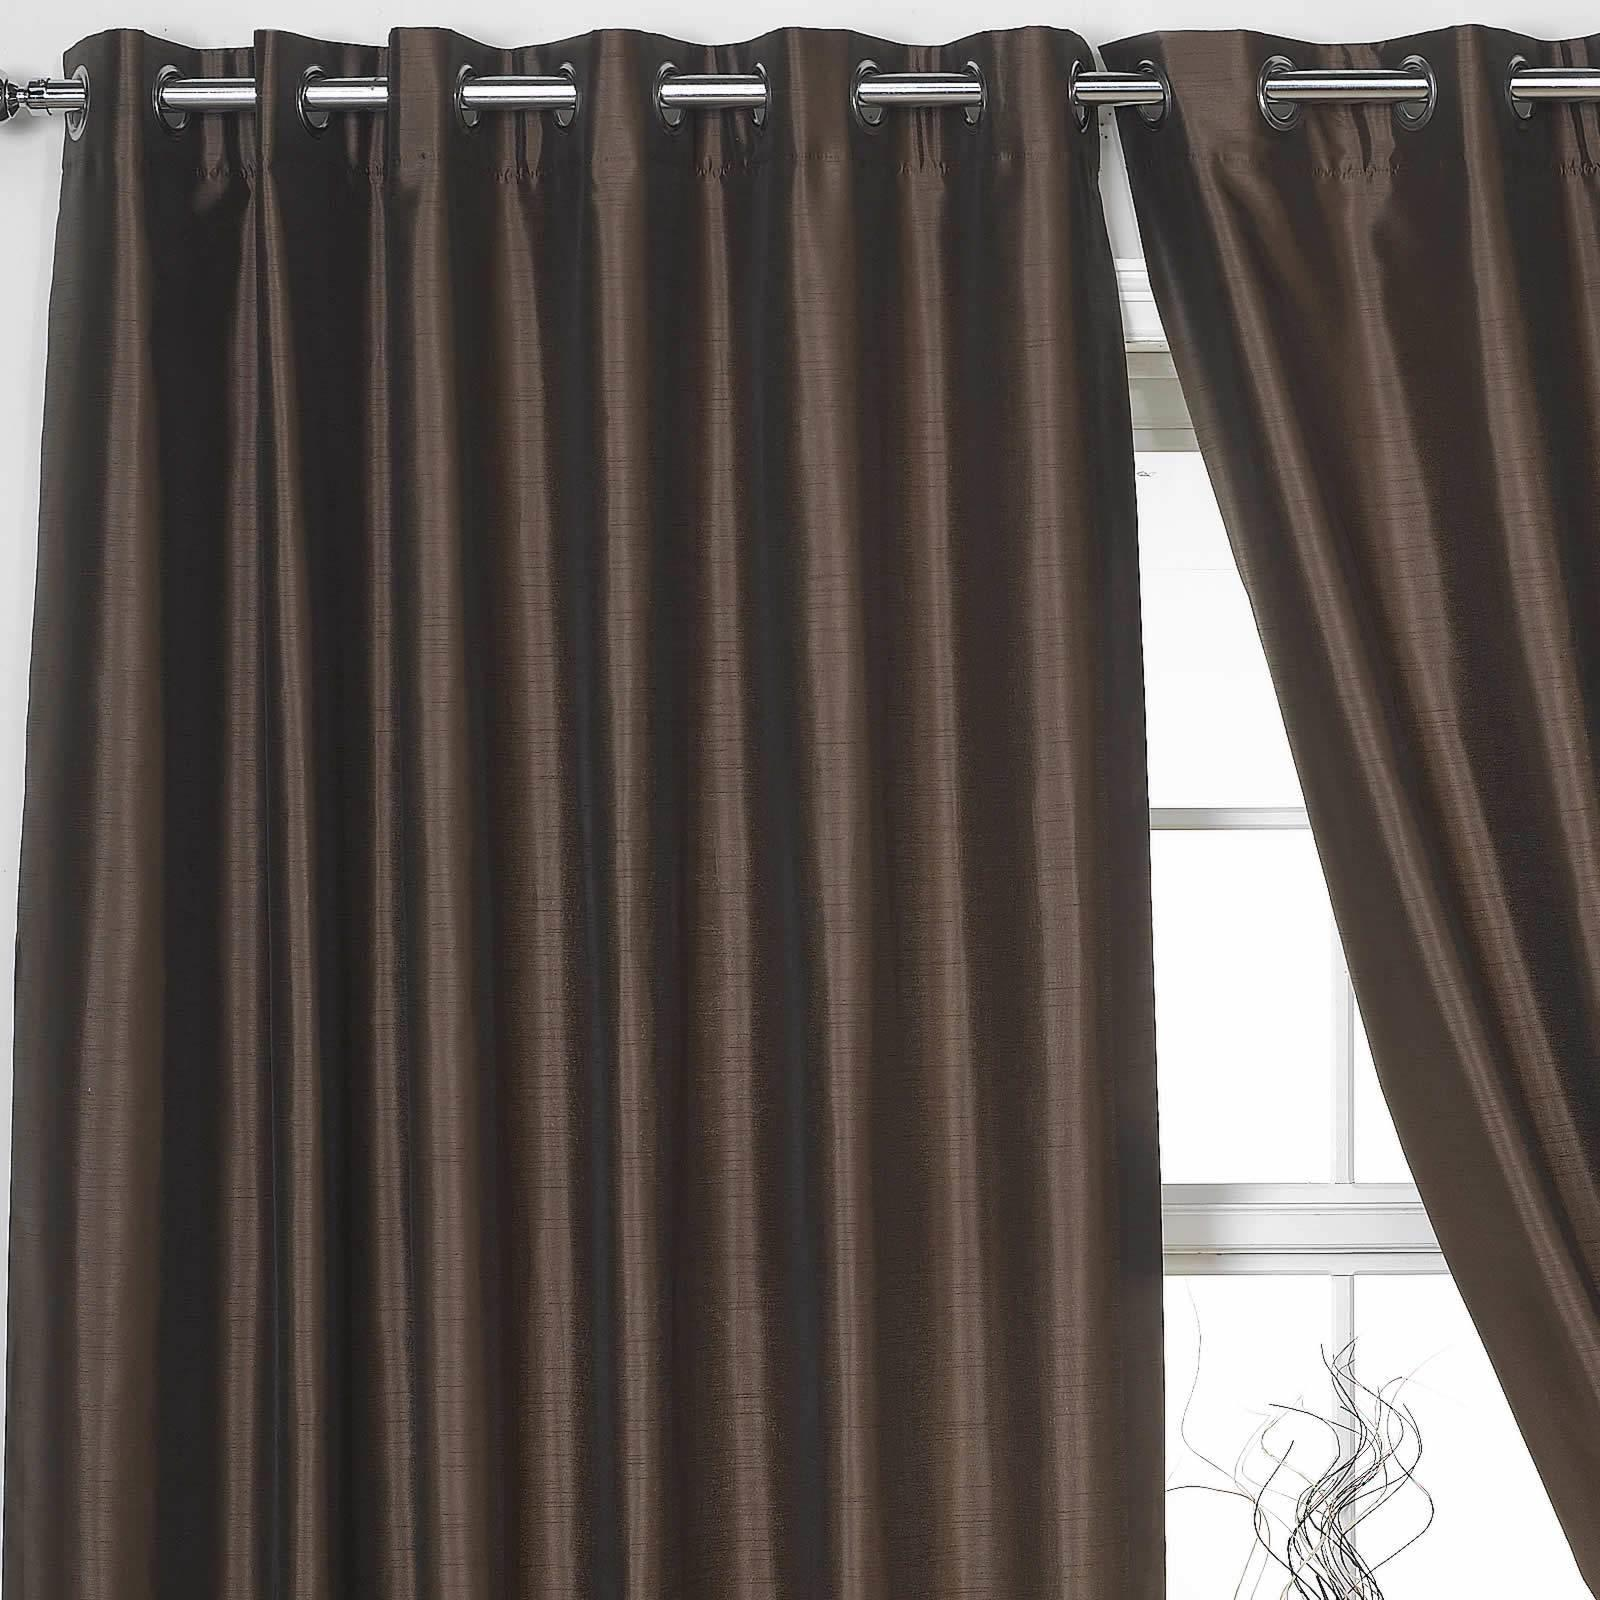 Dark Bamboo Ring Curtain Menzilperde